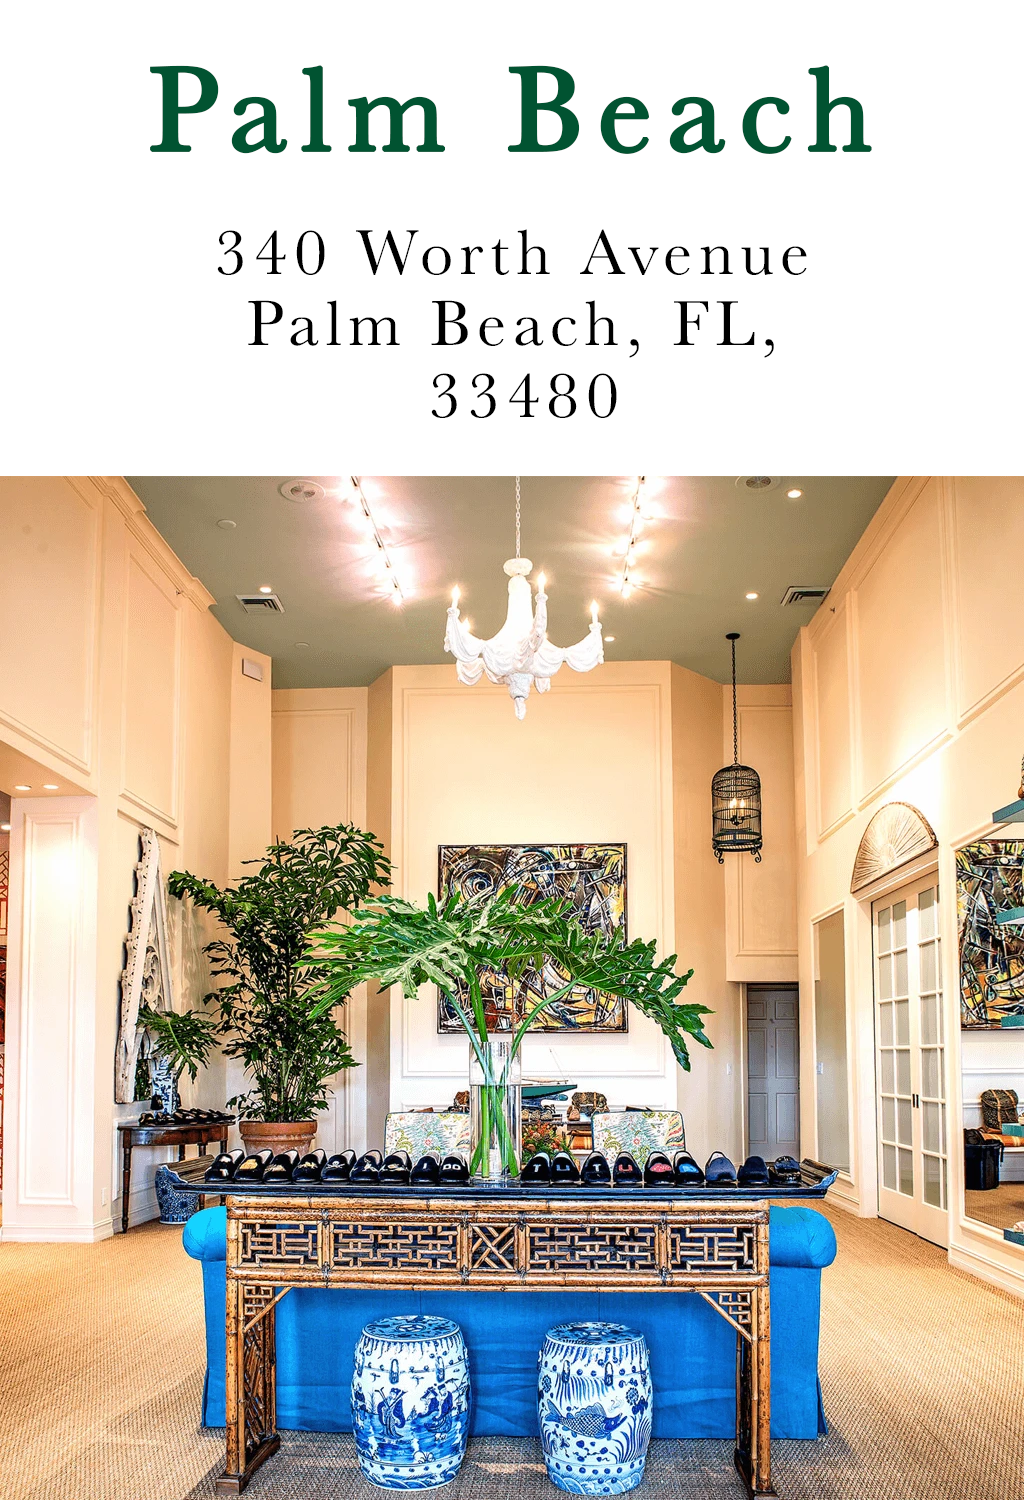 Click here for directions to our Palm Beach Showroom - 340 Worth Avenue, Florida, 33480